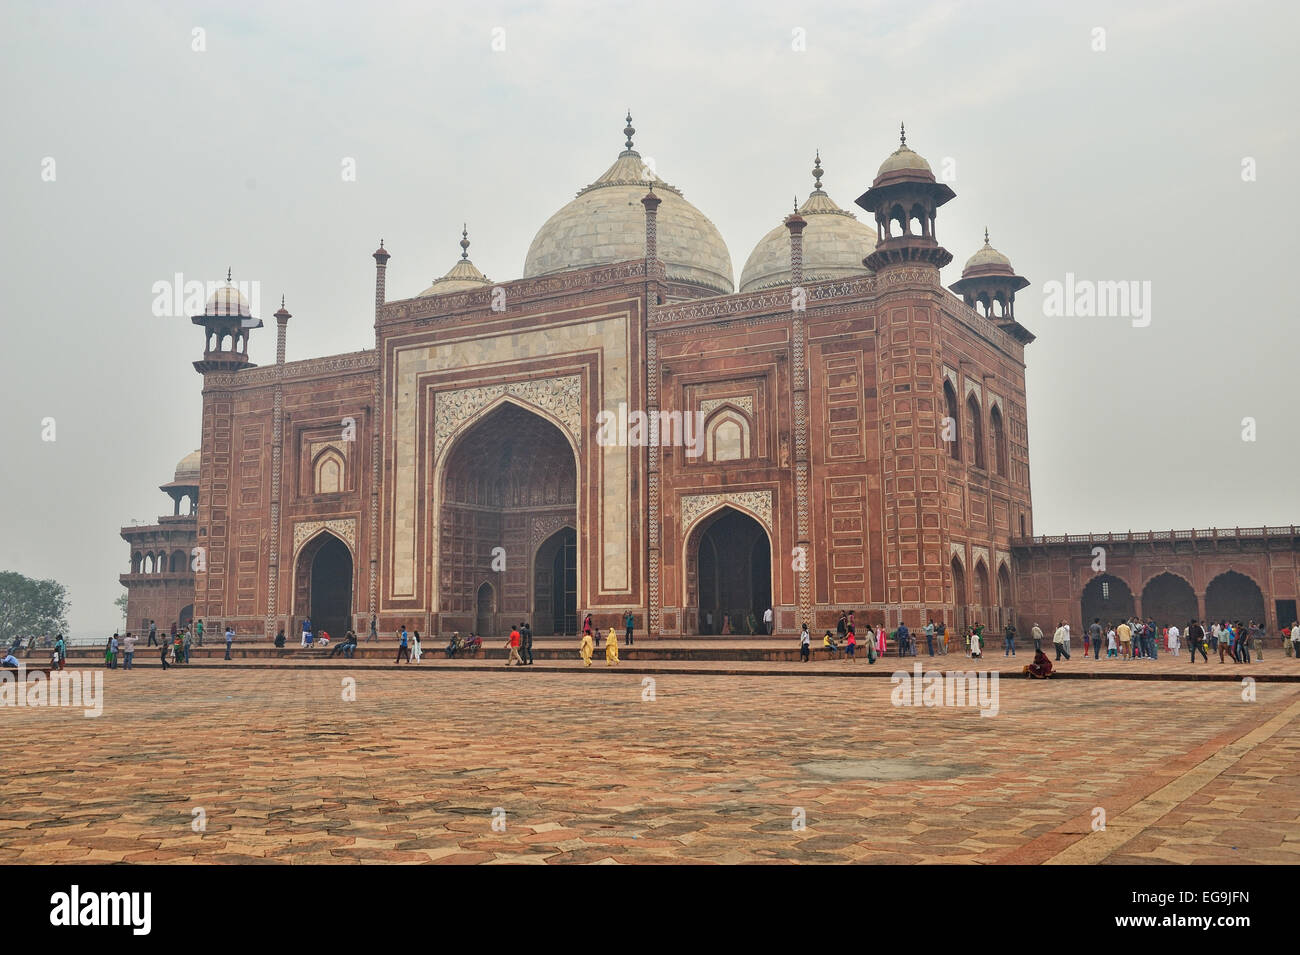 At the far end of the complex, there are two grand red sandstone buildings that face the sides of the tomb - Stock Image